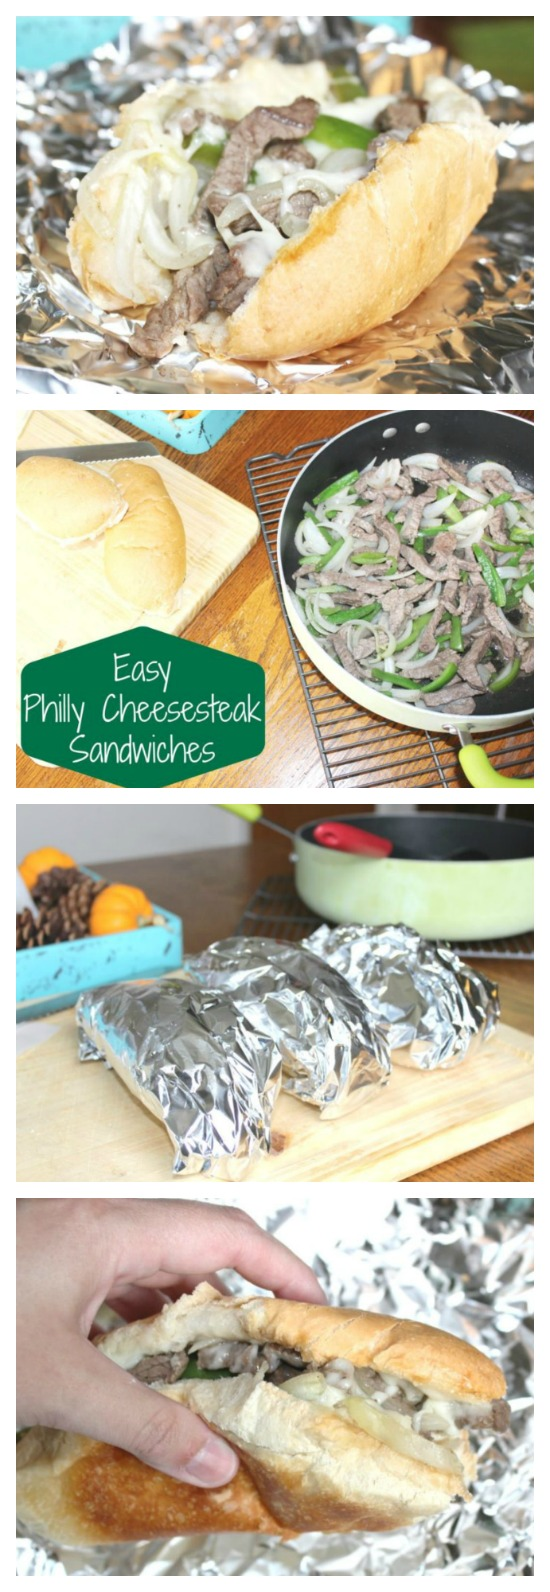 These Philly Cheesesteak sandwiches are easy to make and perfect for a weeknight dinner!